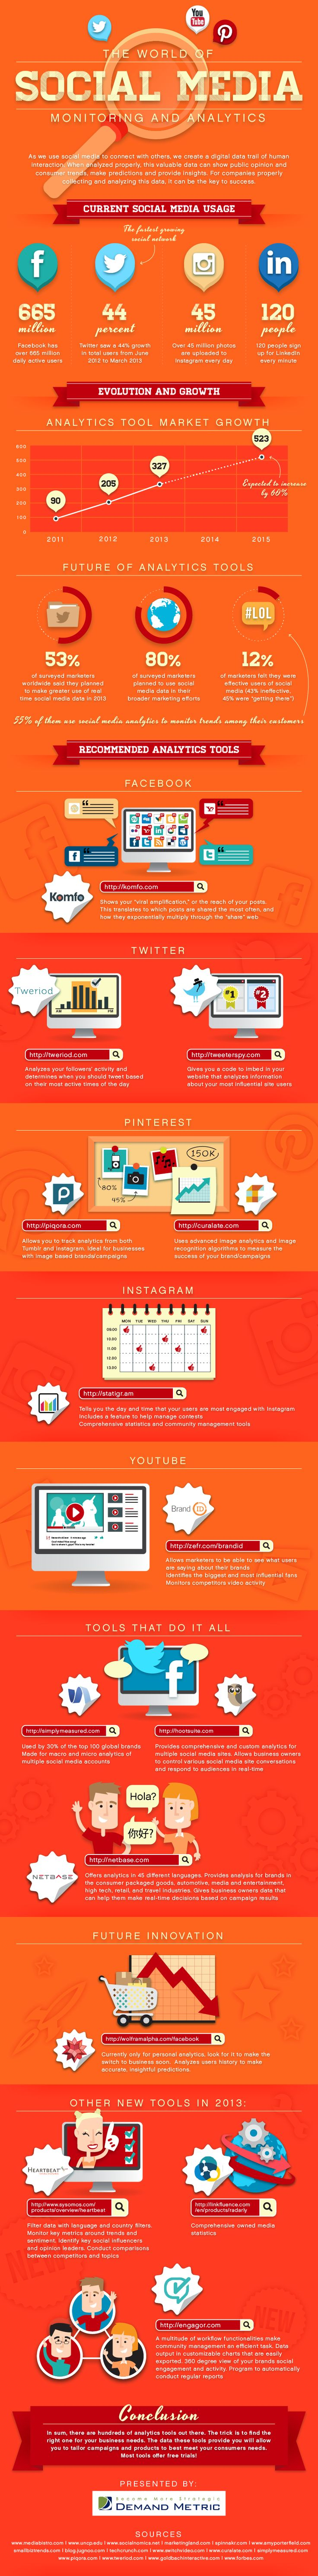 The World of Social Media Monitoring and Analytics #infographic #SocialMedia #Business